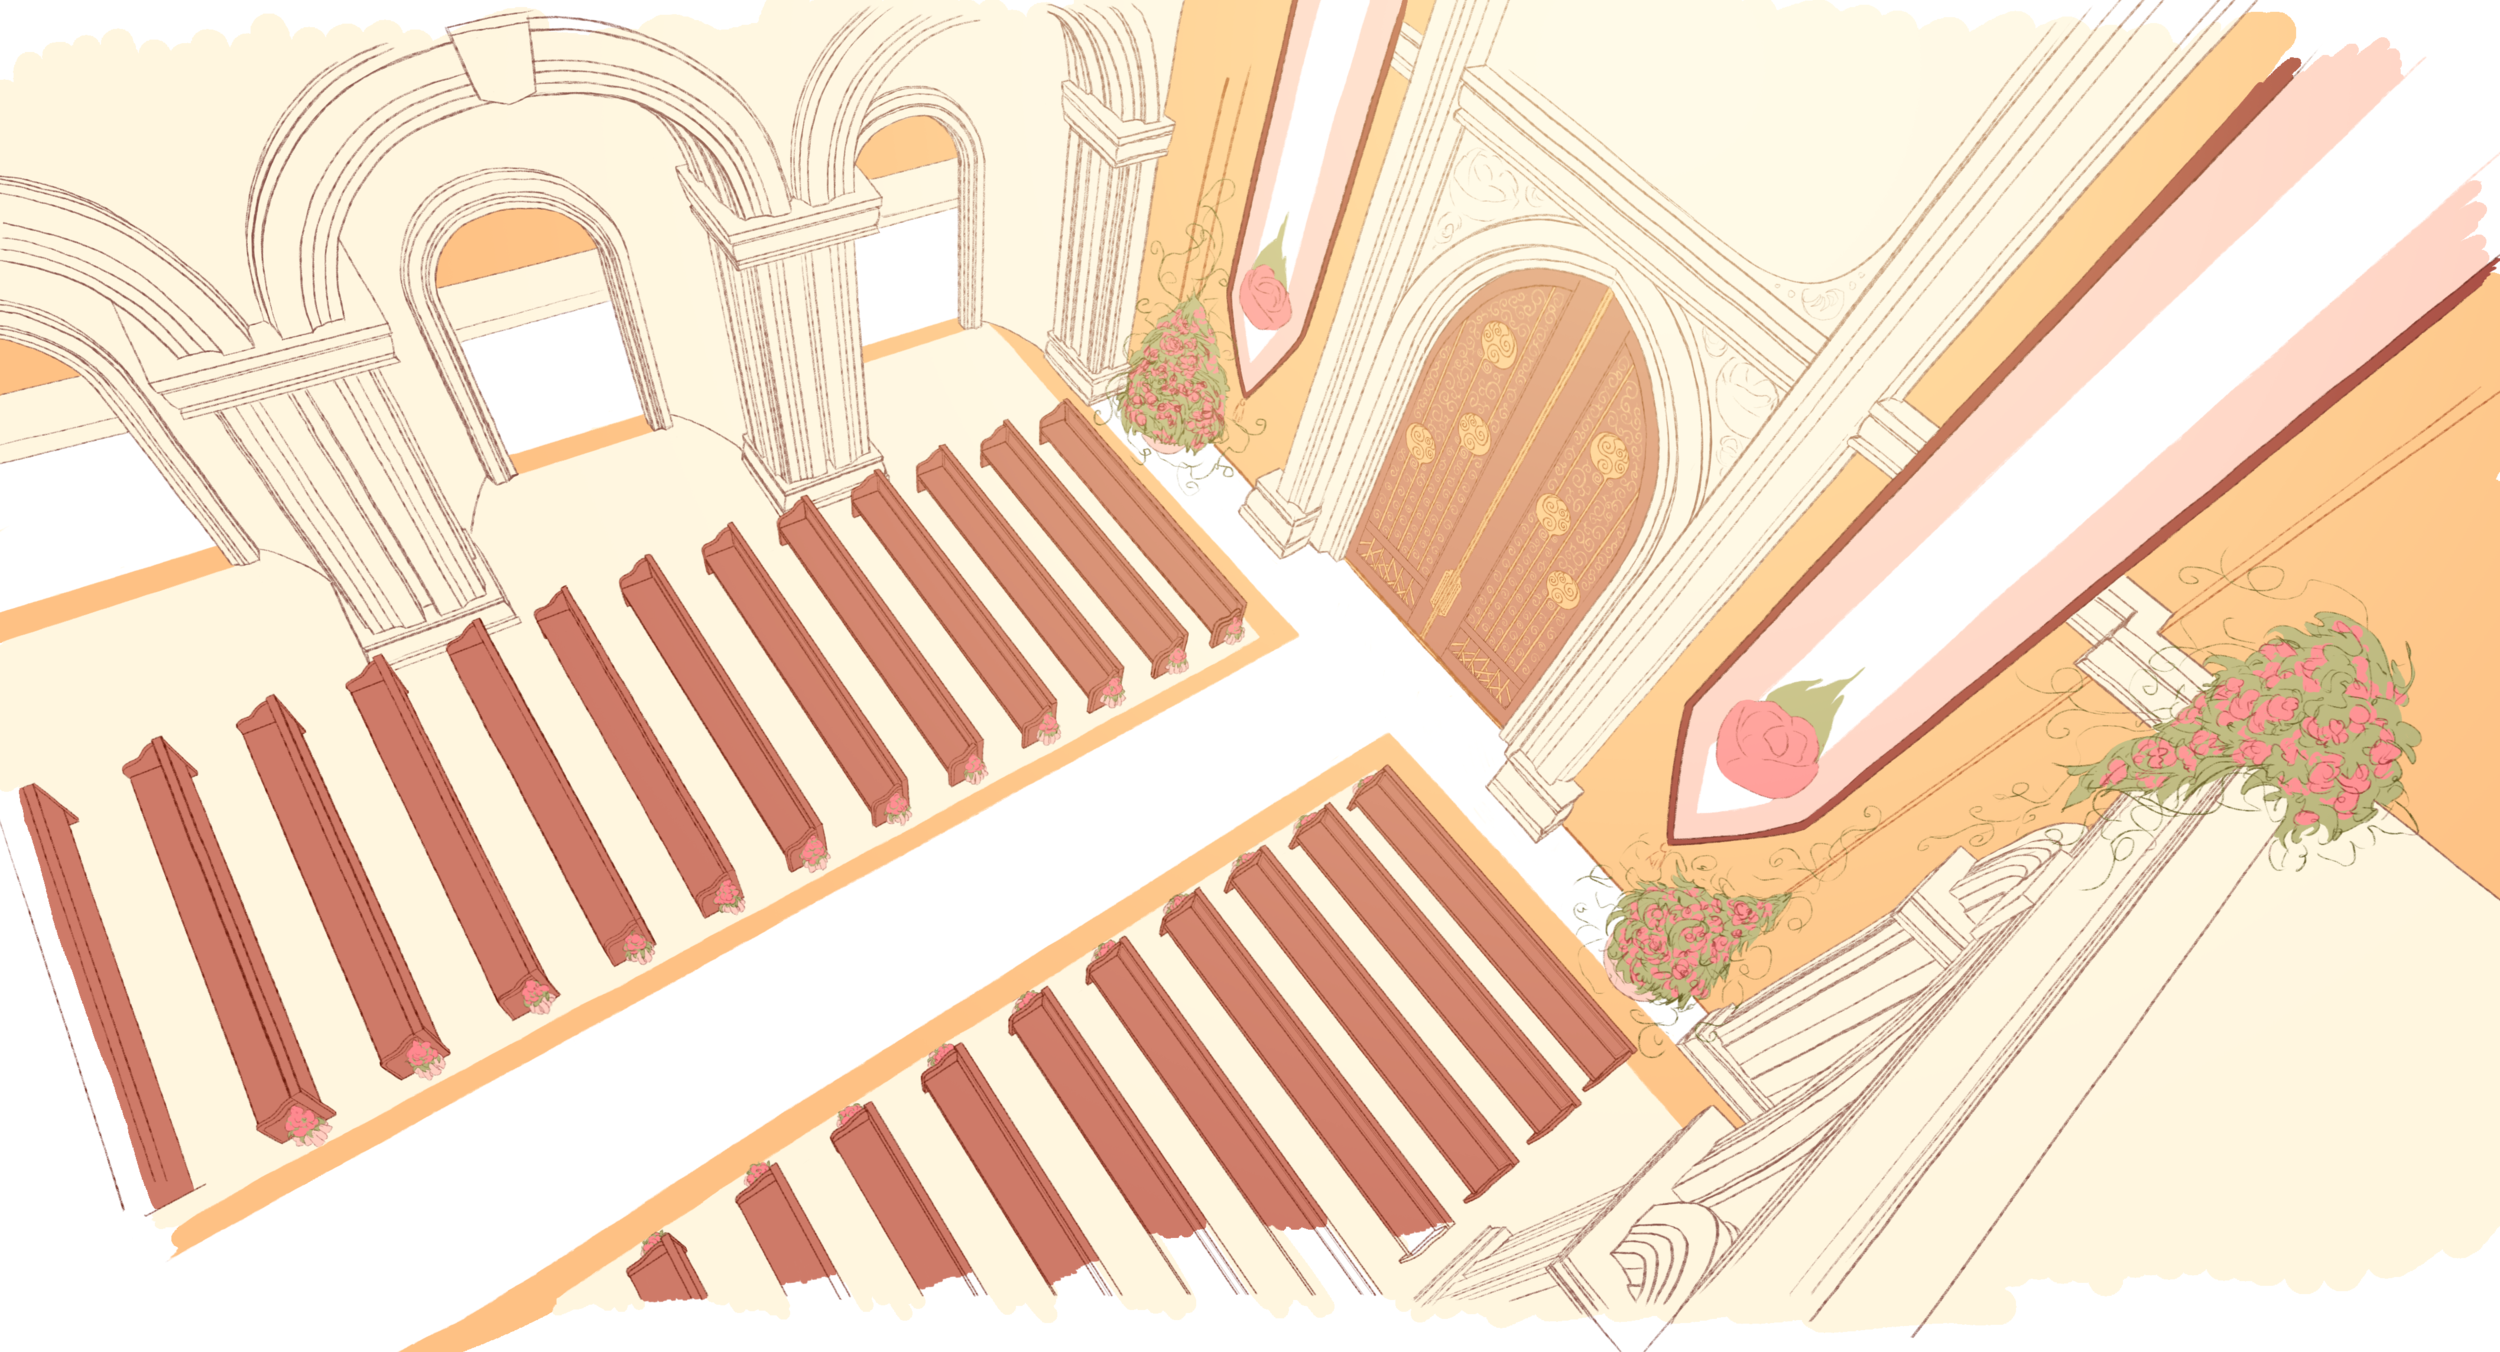 layout_8_wip.png